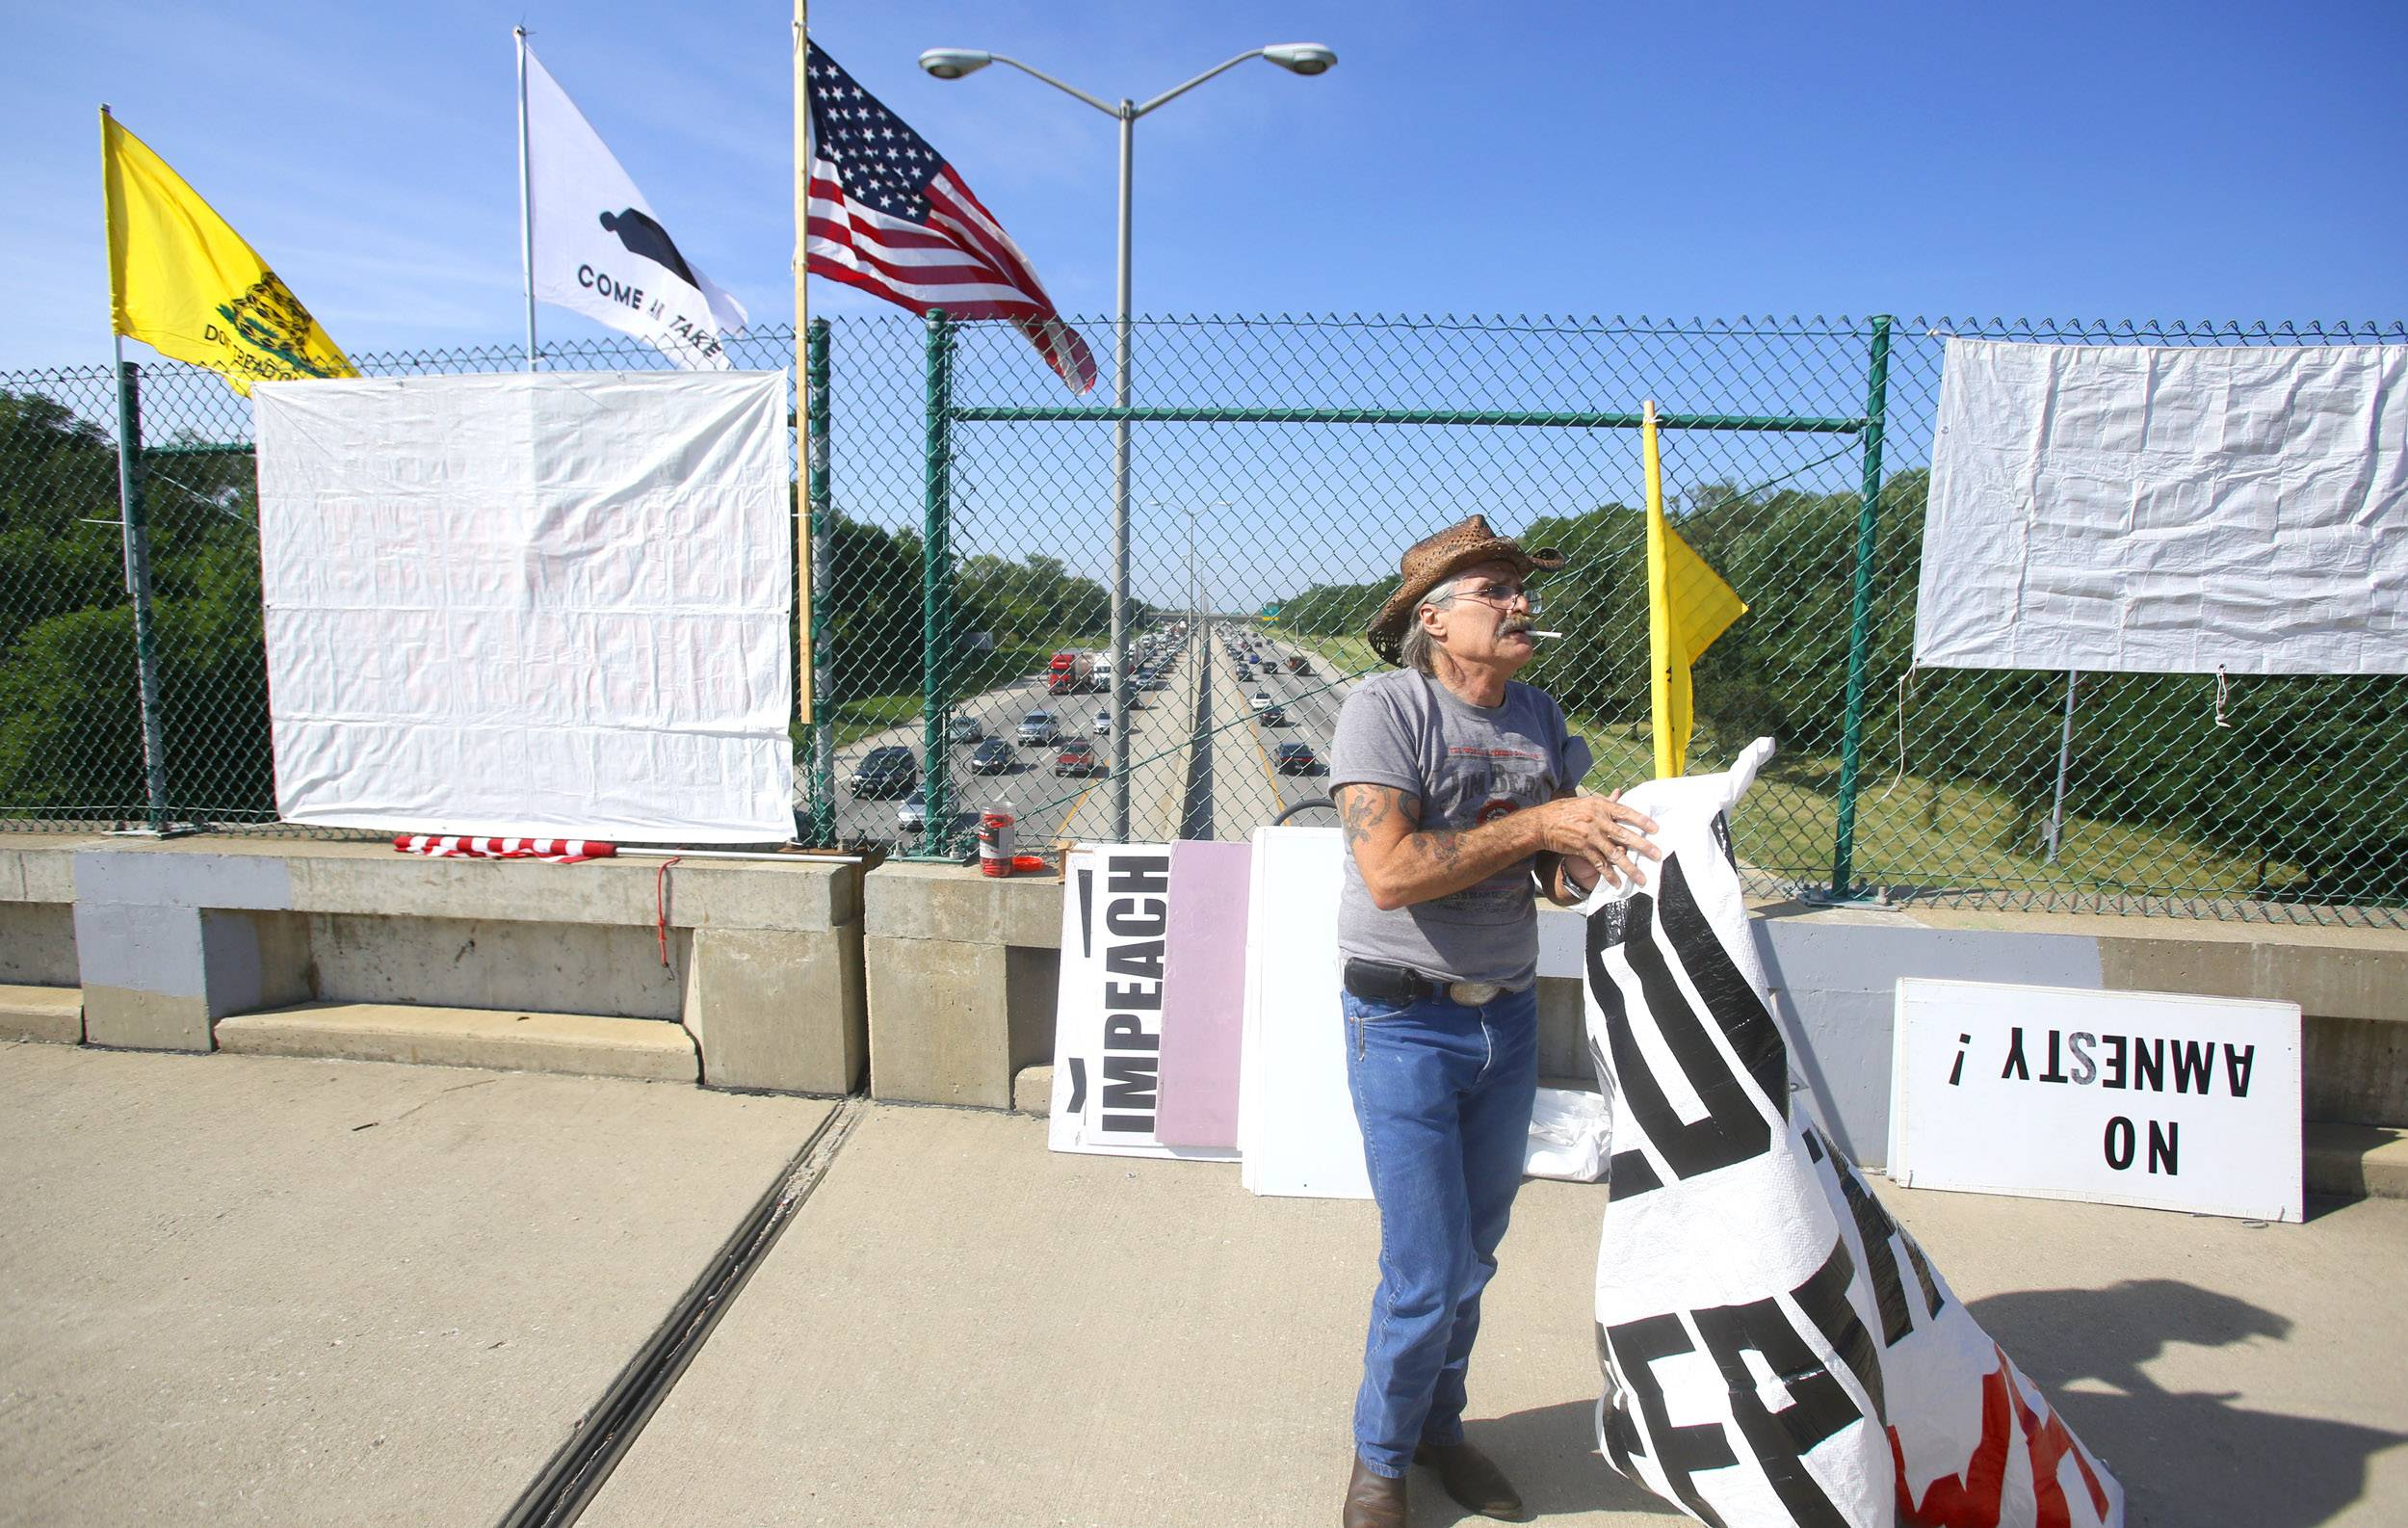 Mike Malone of Overpasses for America sets up to protest against President Barack Obama on the Great Western Trail foot bridge over I-355.